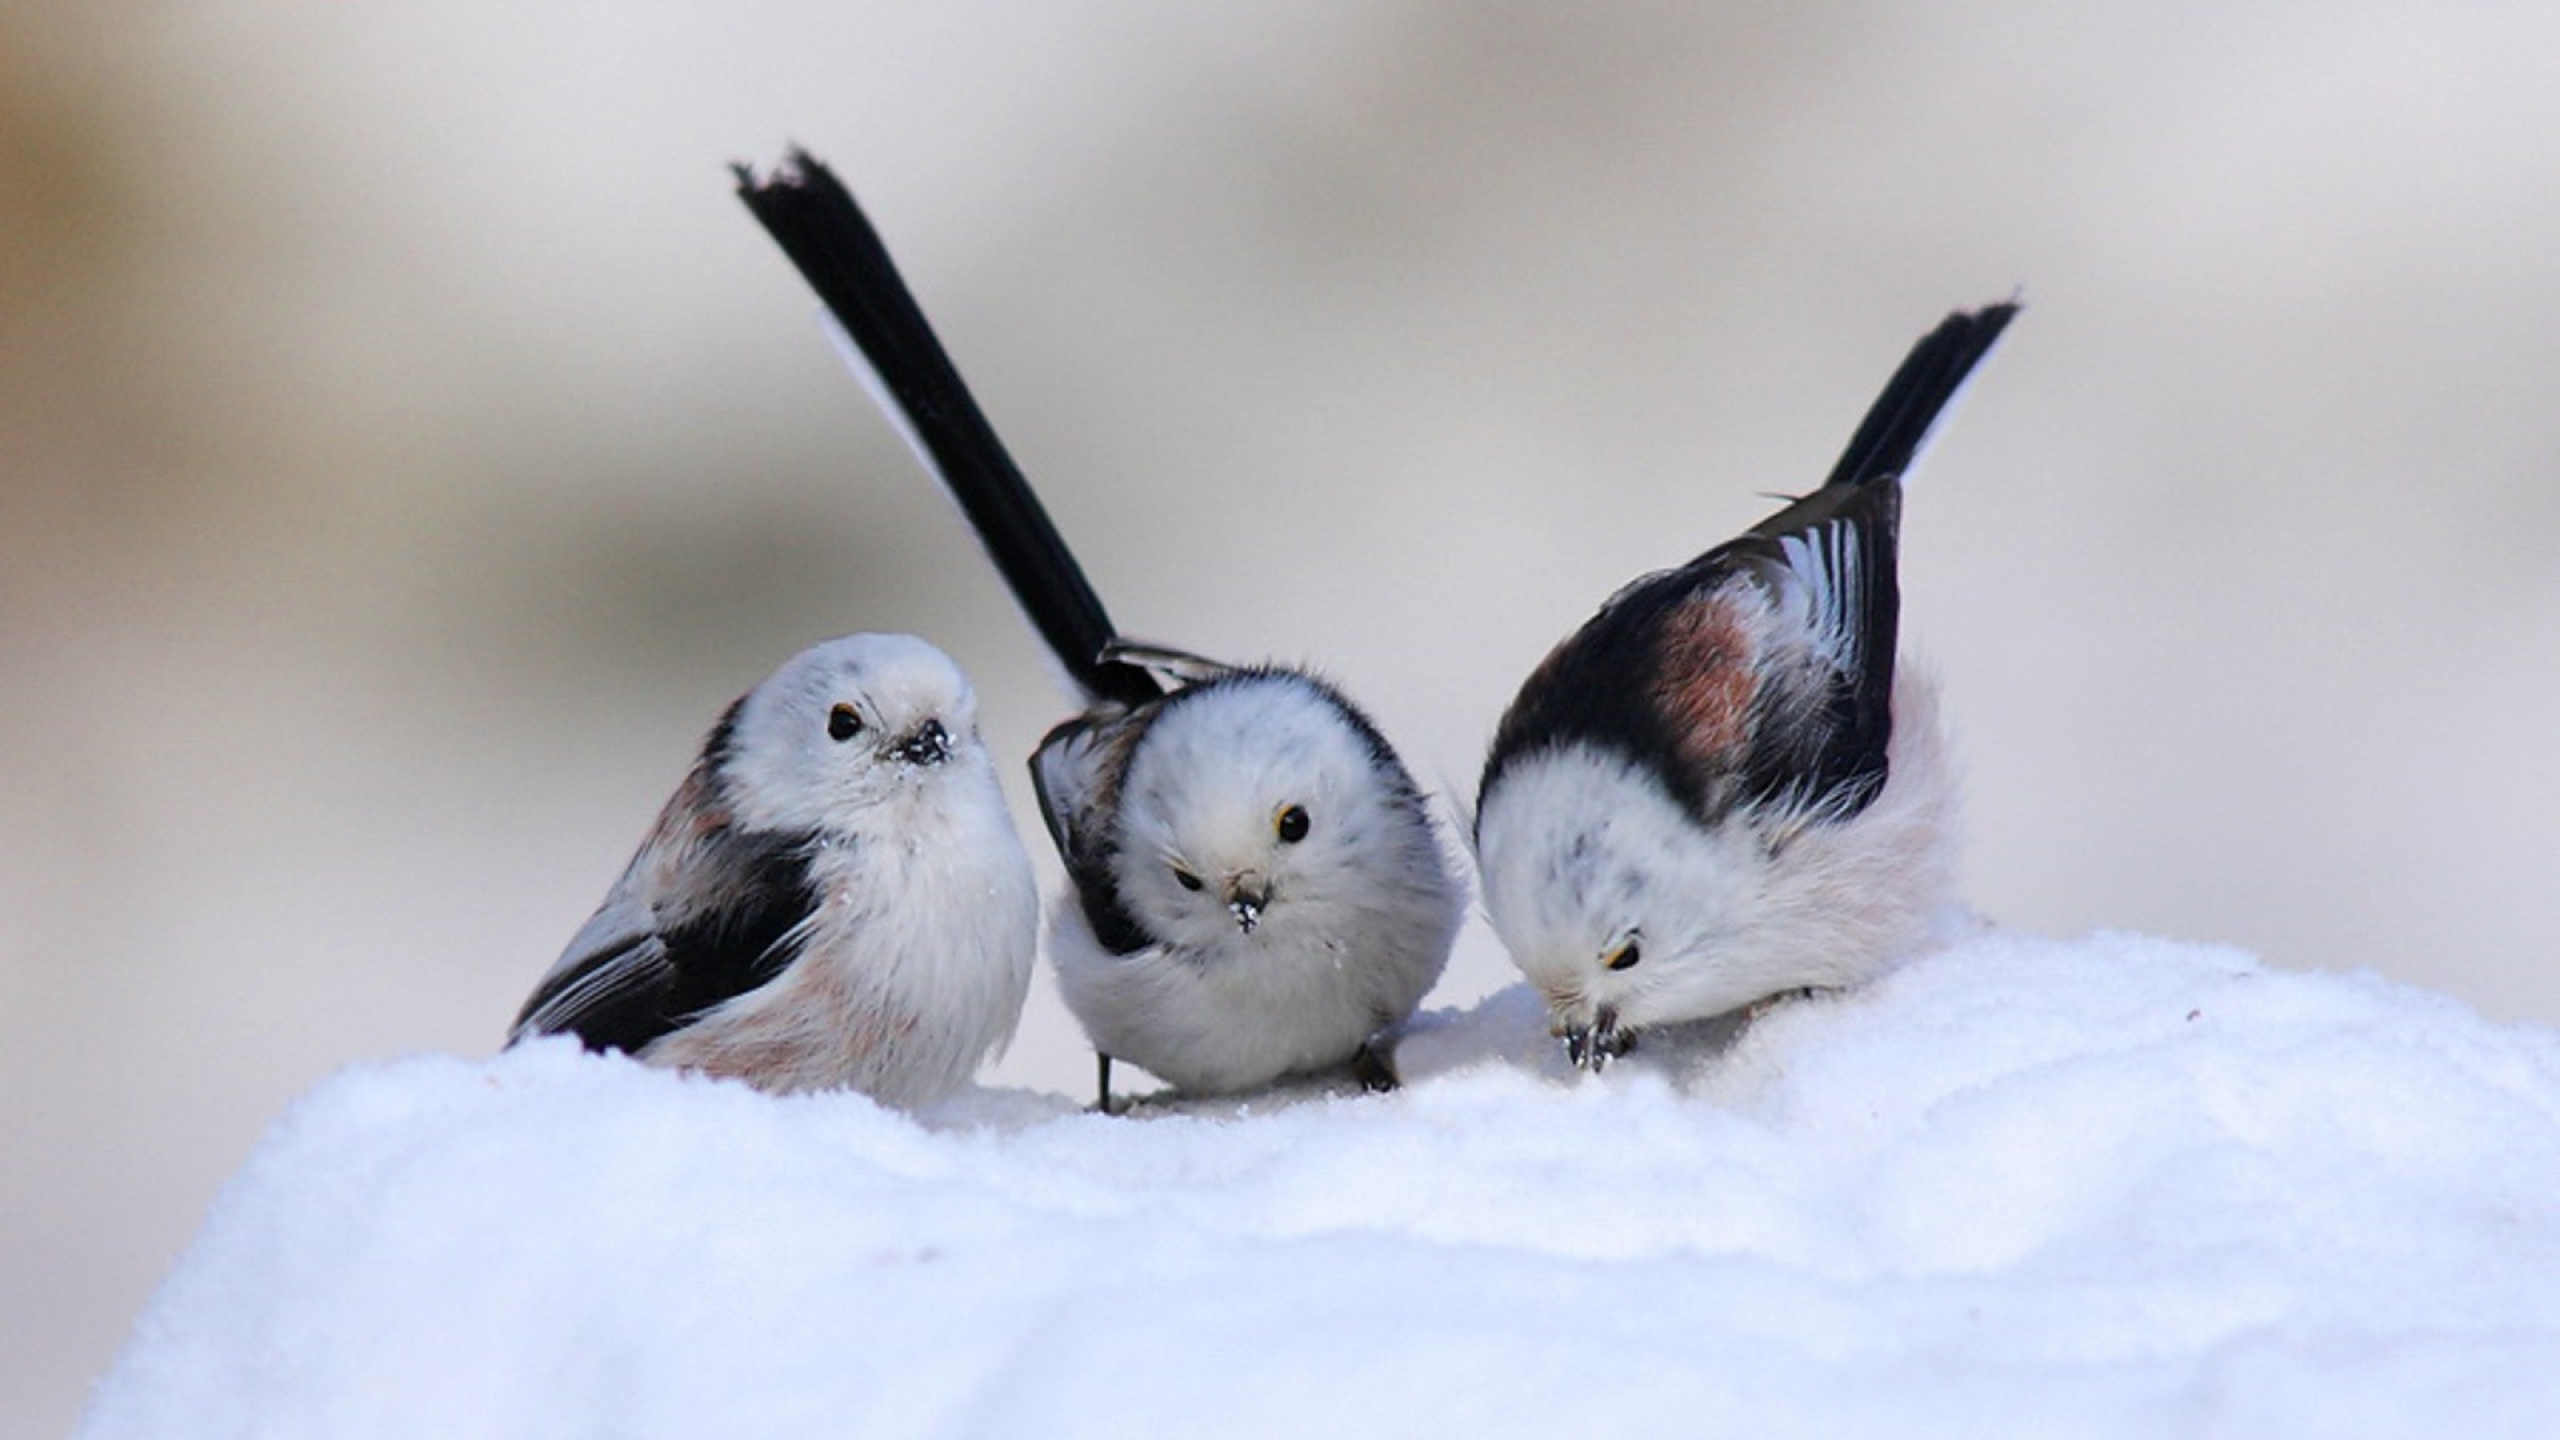 Cute Birds in Winter Milad Nasri 2560x1440